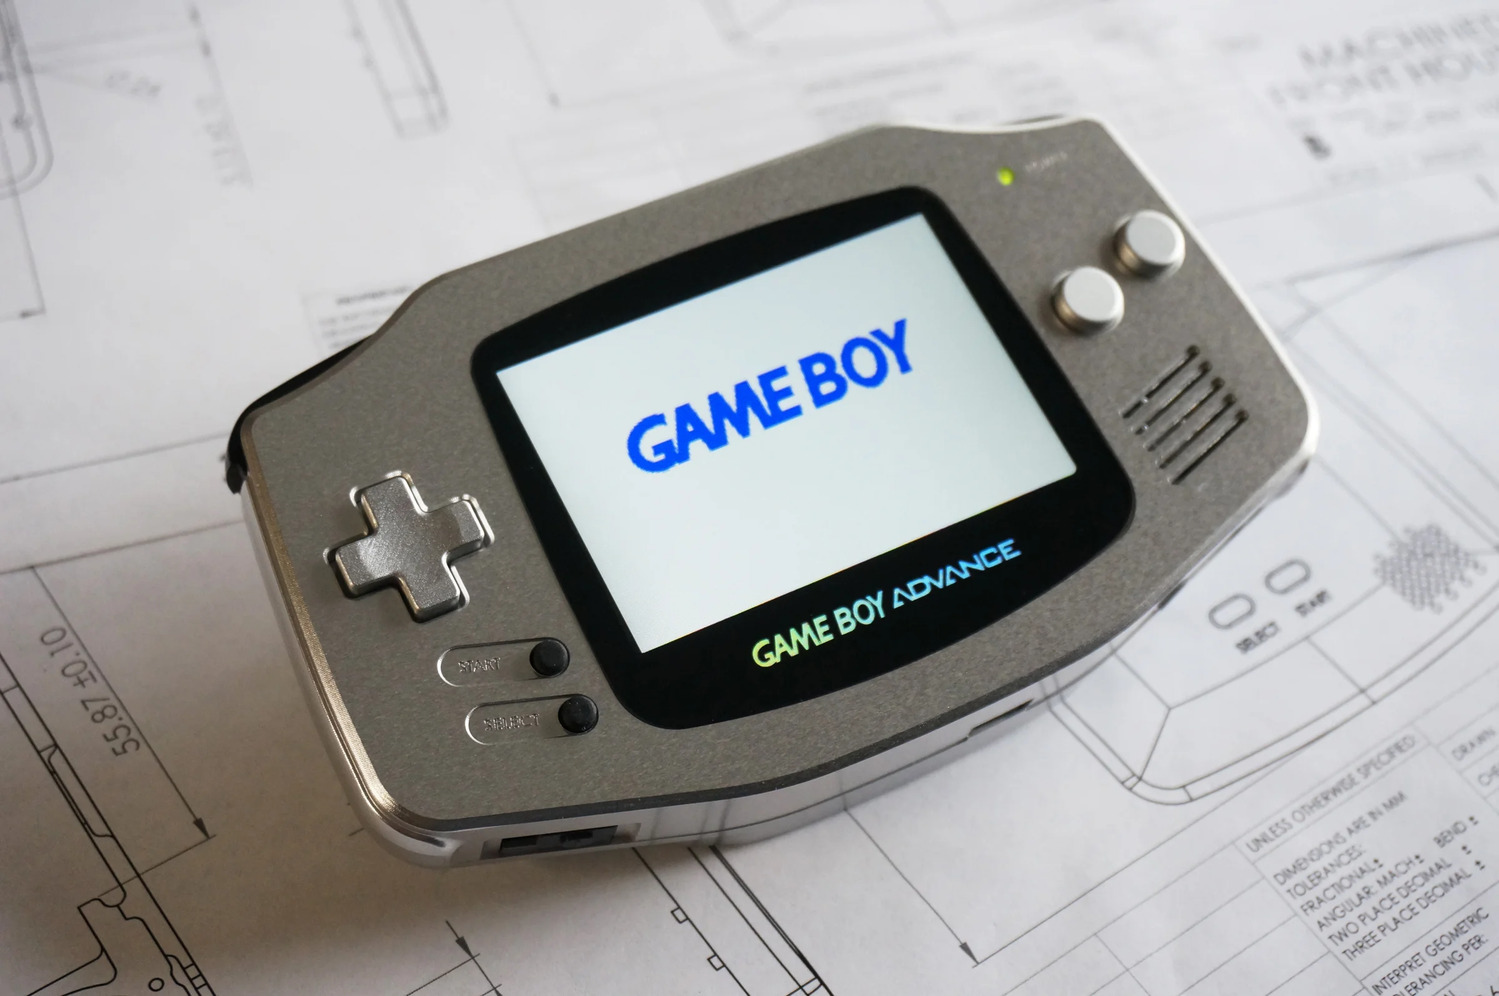 Fueled by nostalgia and longing for a simpler time, hardware tinkerers are injecting new life into the iconic handheld game console. The Game Boy live